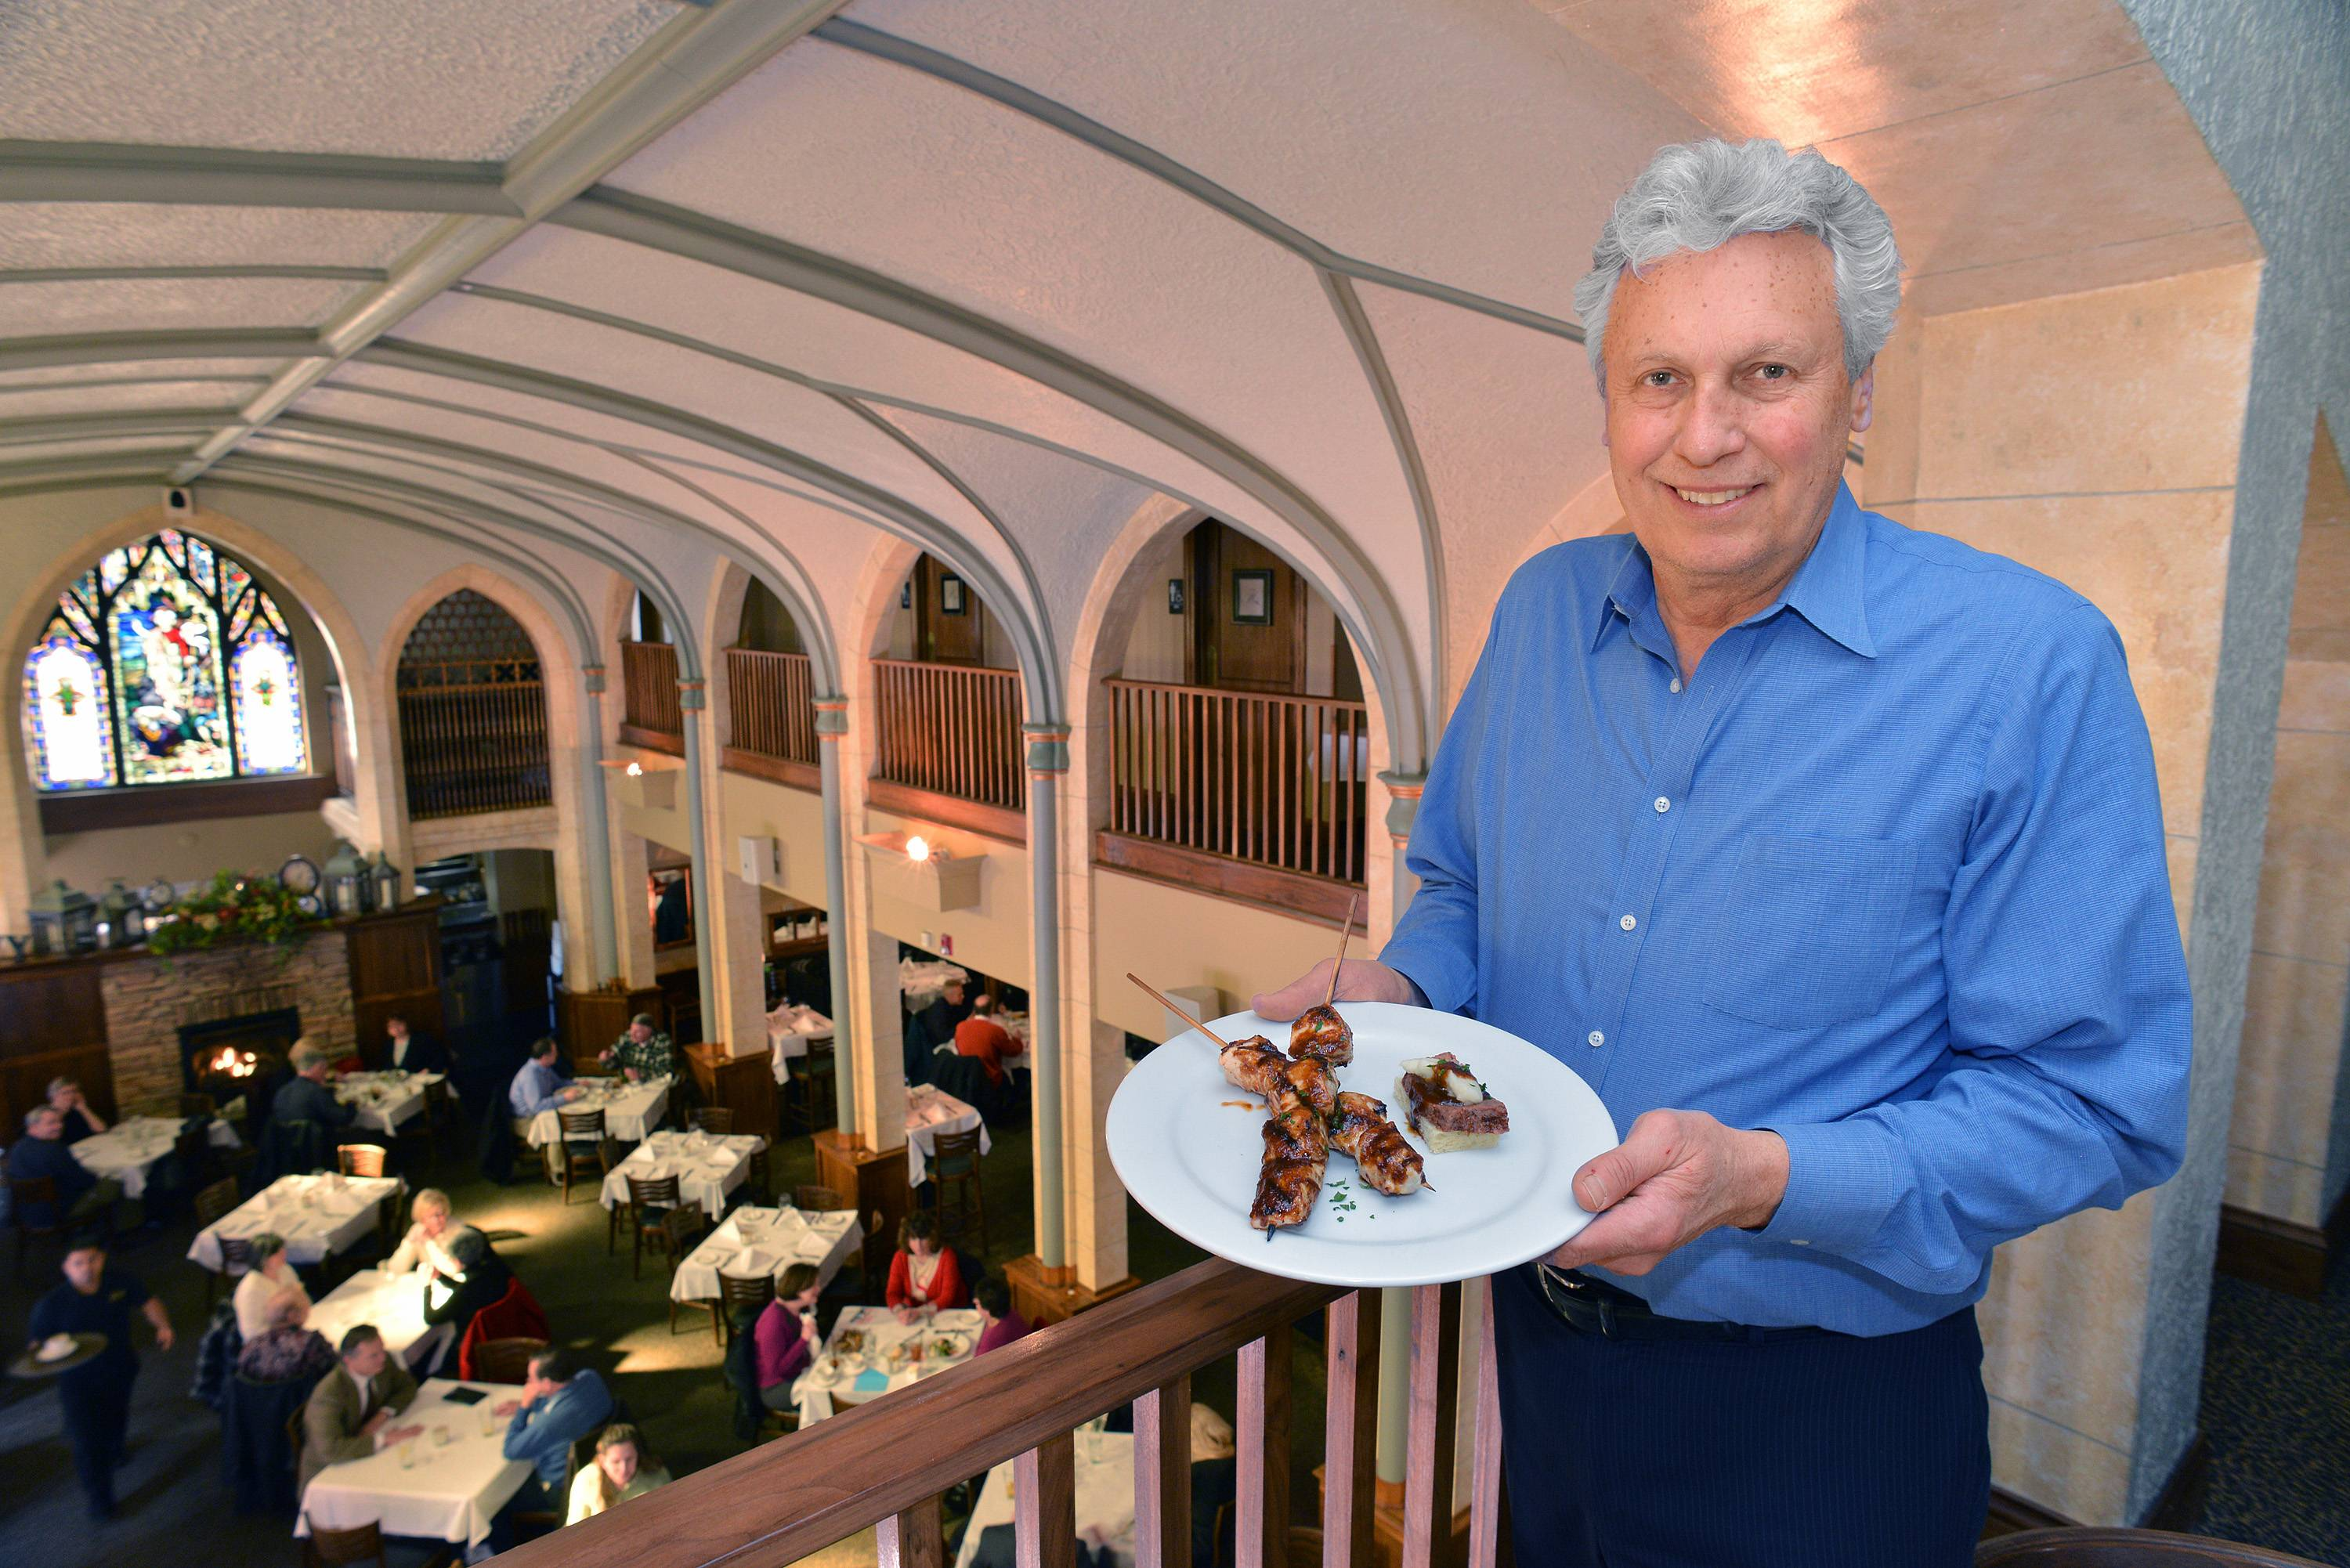 Dick O'Gorman, owner of the Ivy restaurant in downtown Wheaton, displays two specials — chicken satay skewers and andouille sausage meatloaf canapés — that he'll be offering during a kickoff event for the Downtown Wheaton Association's first Restaurant Week.